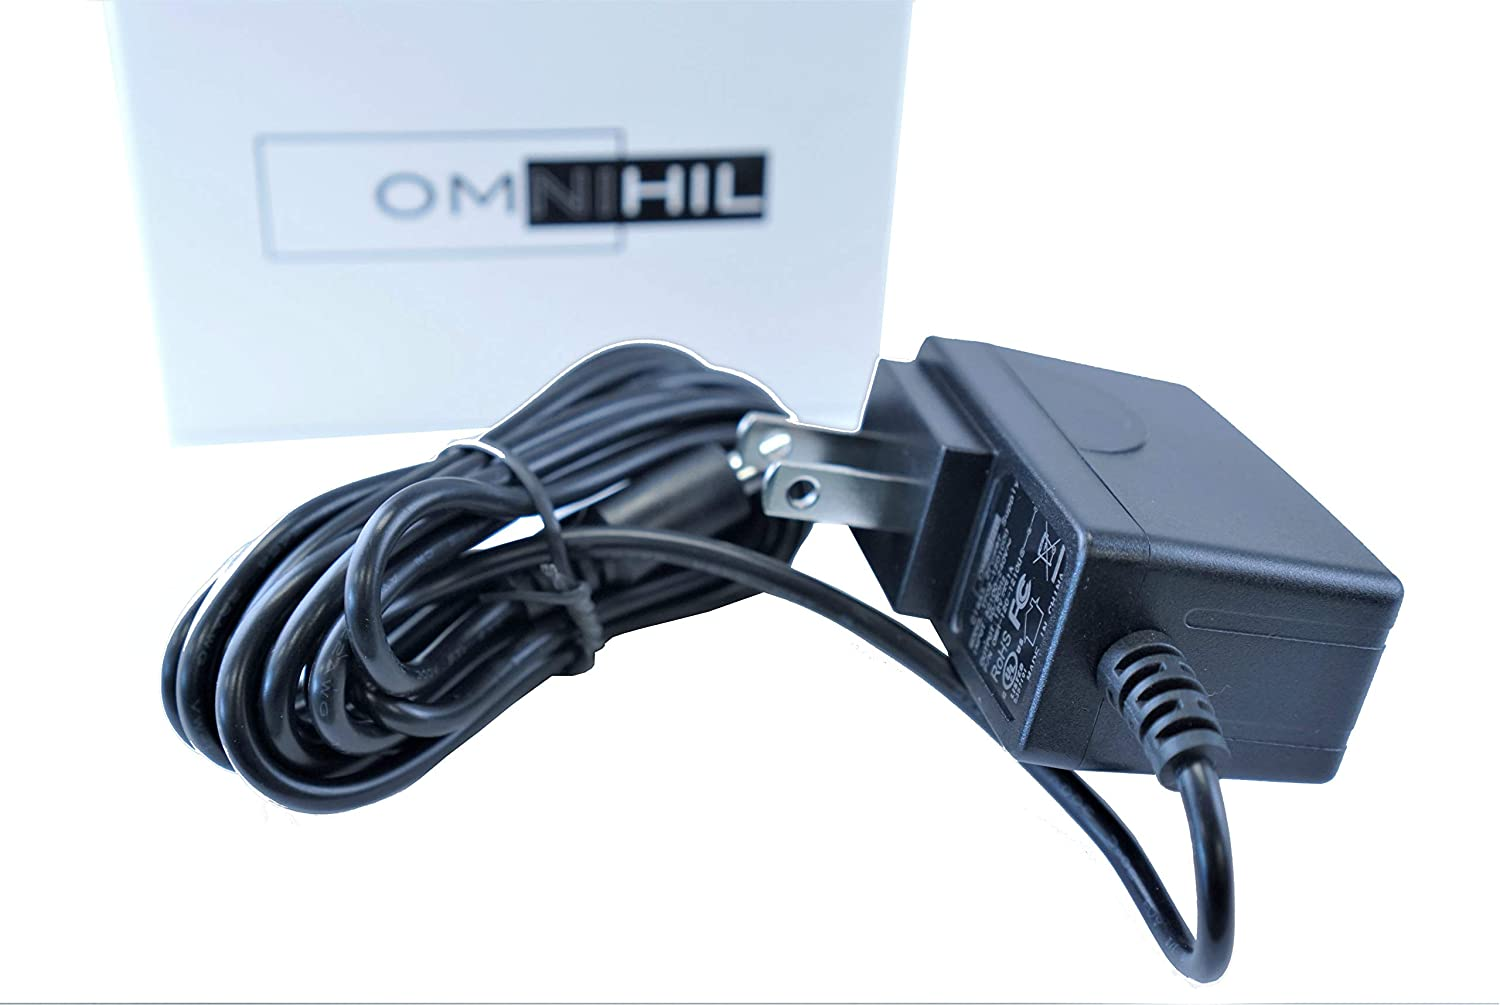 [UL Listed] OMNIHIL 8 Feet Long AC/DC Adapter Compatible with Alesis PerformancePad Pro Multi-Pad Percussion Instrument Power Supply Charger